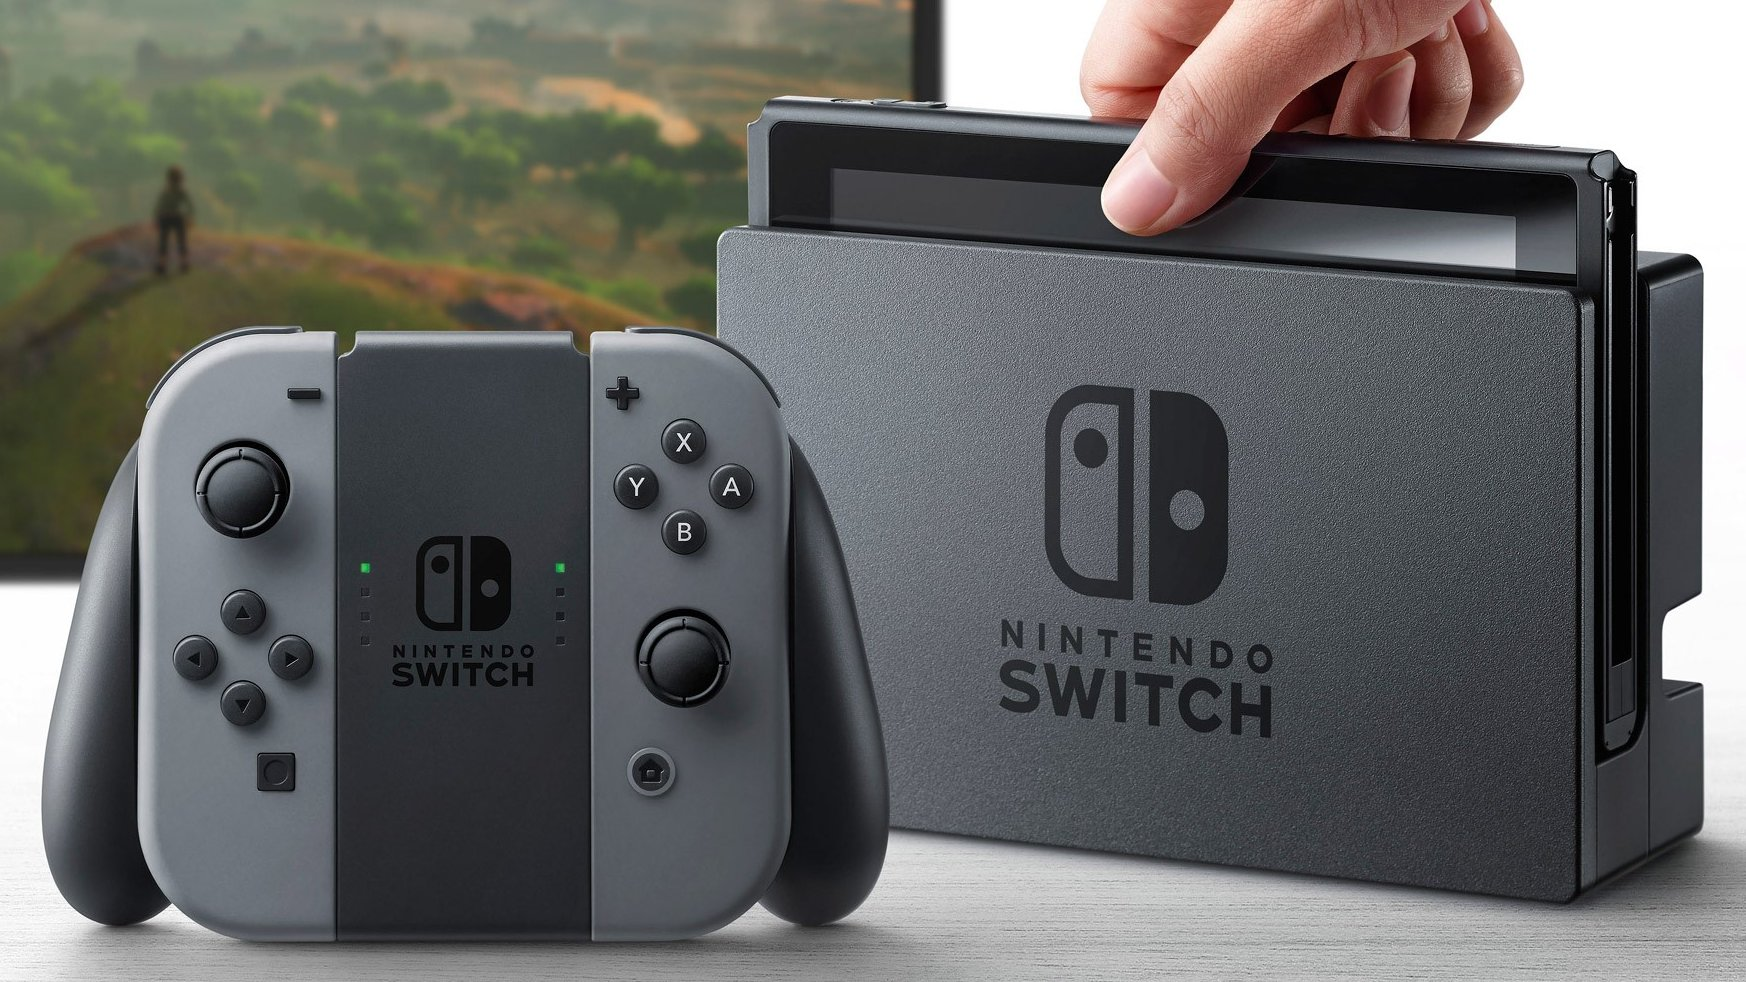 Nintendo Switch console plays games home and away